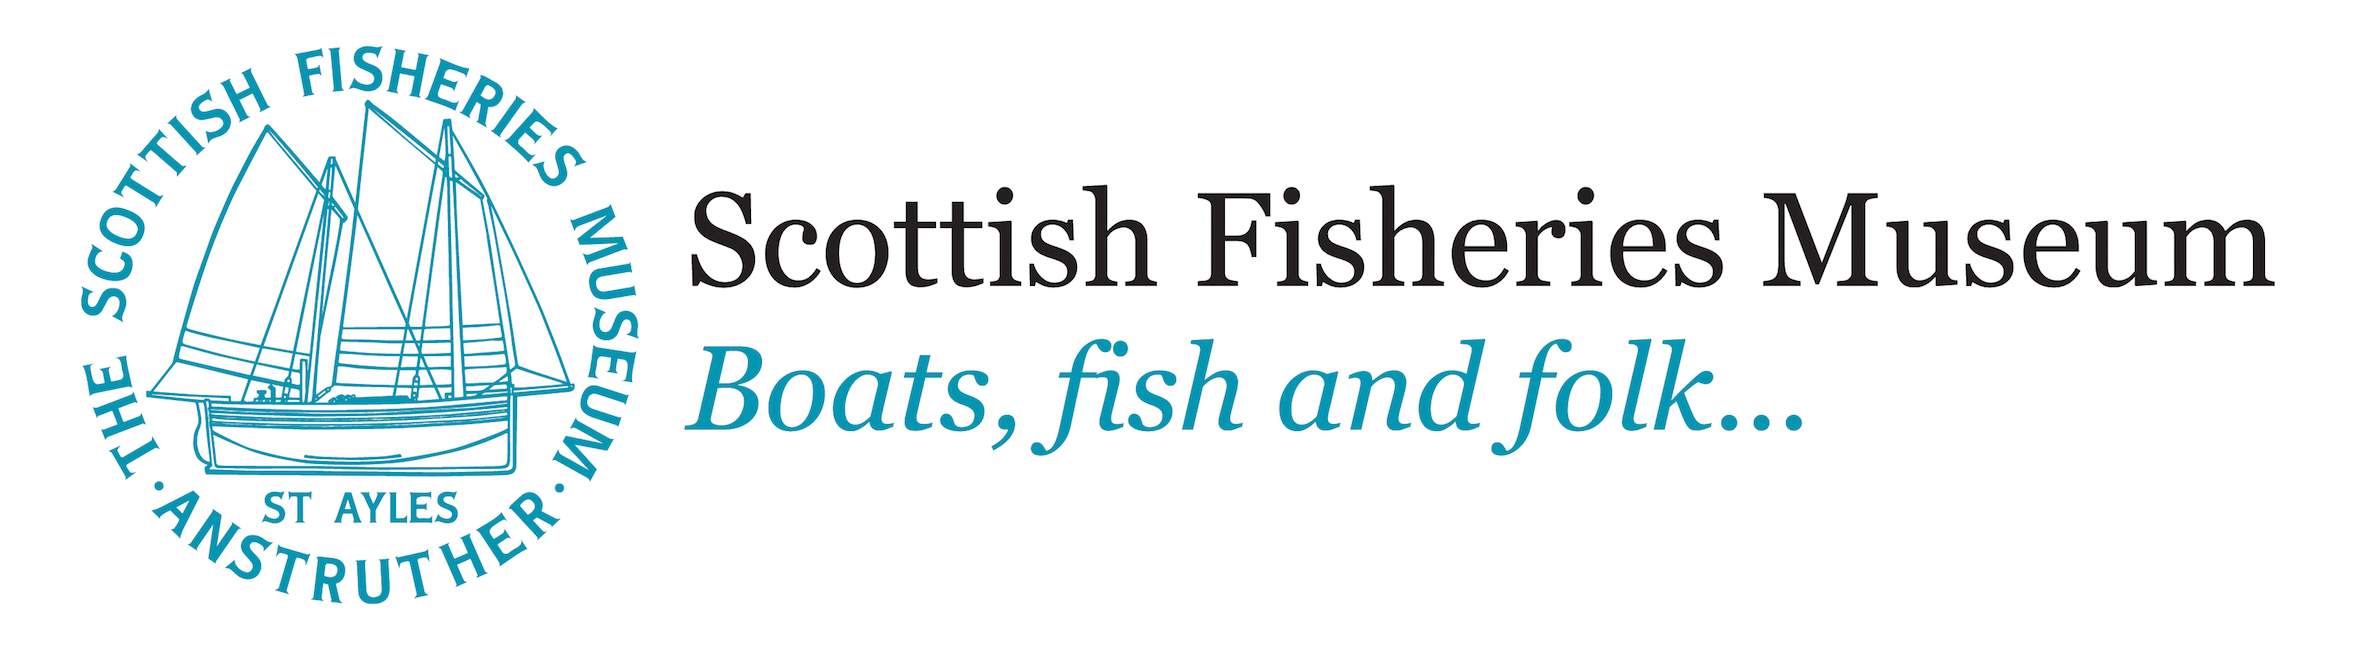 Scottish Fisheries Museum Logo